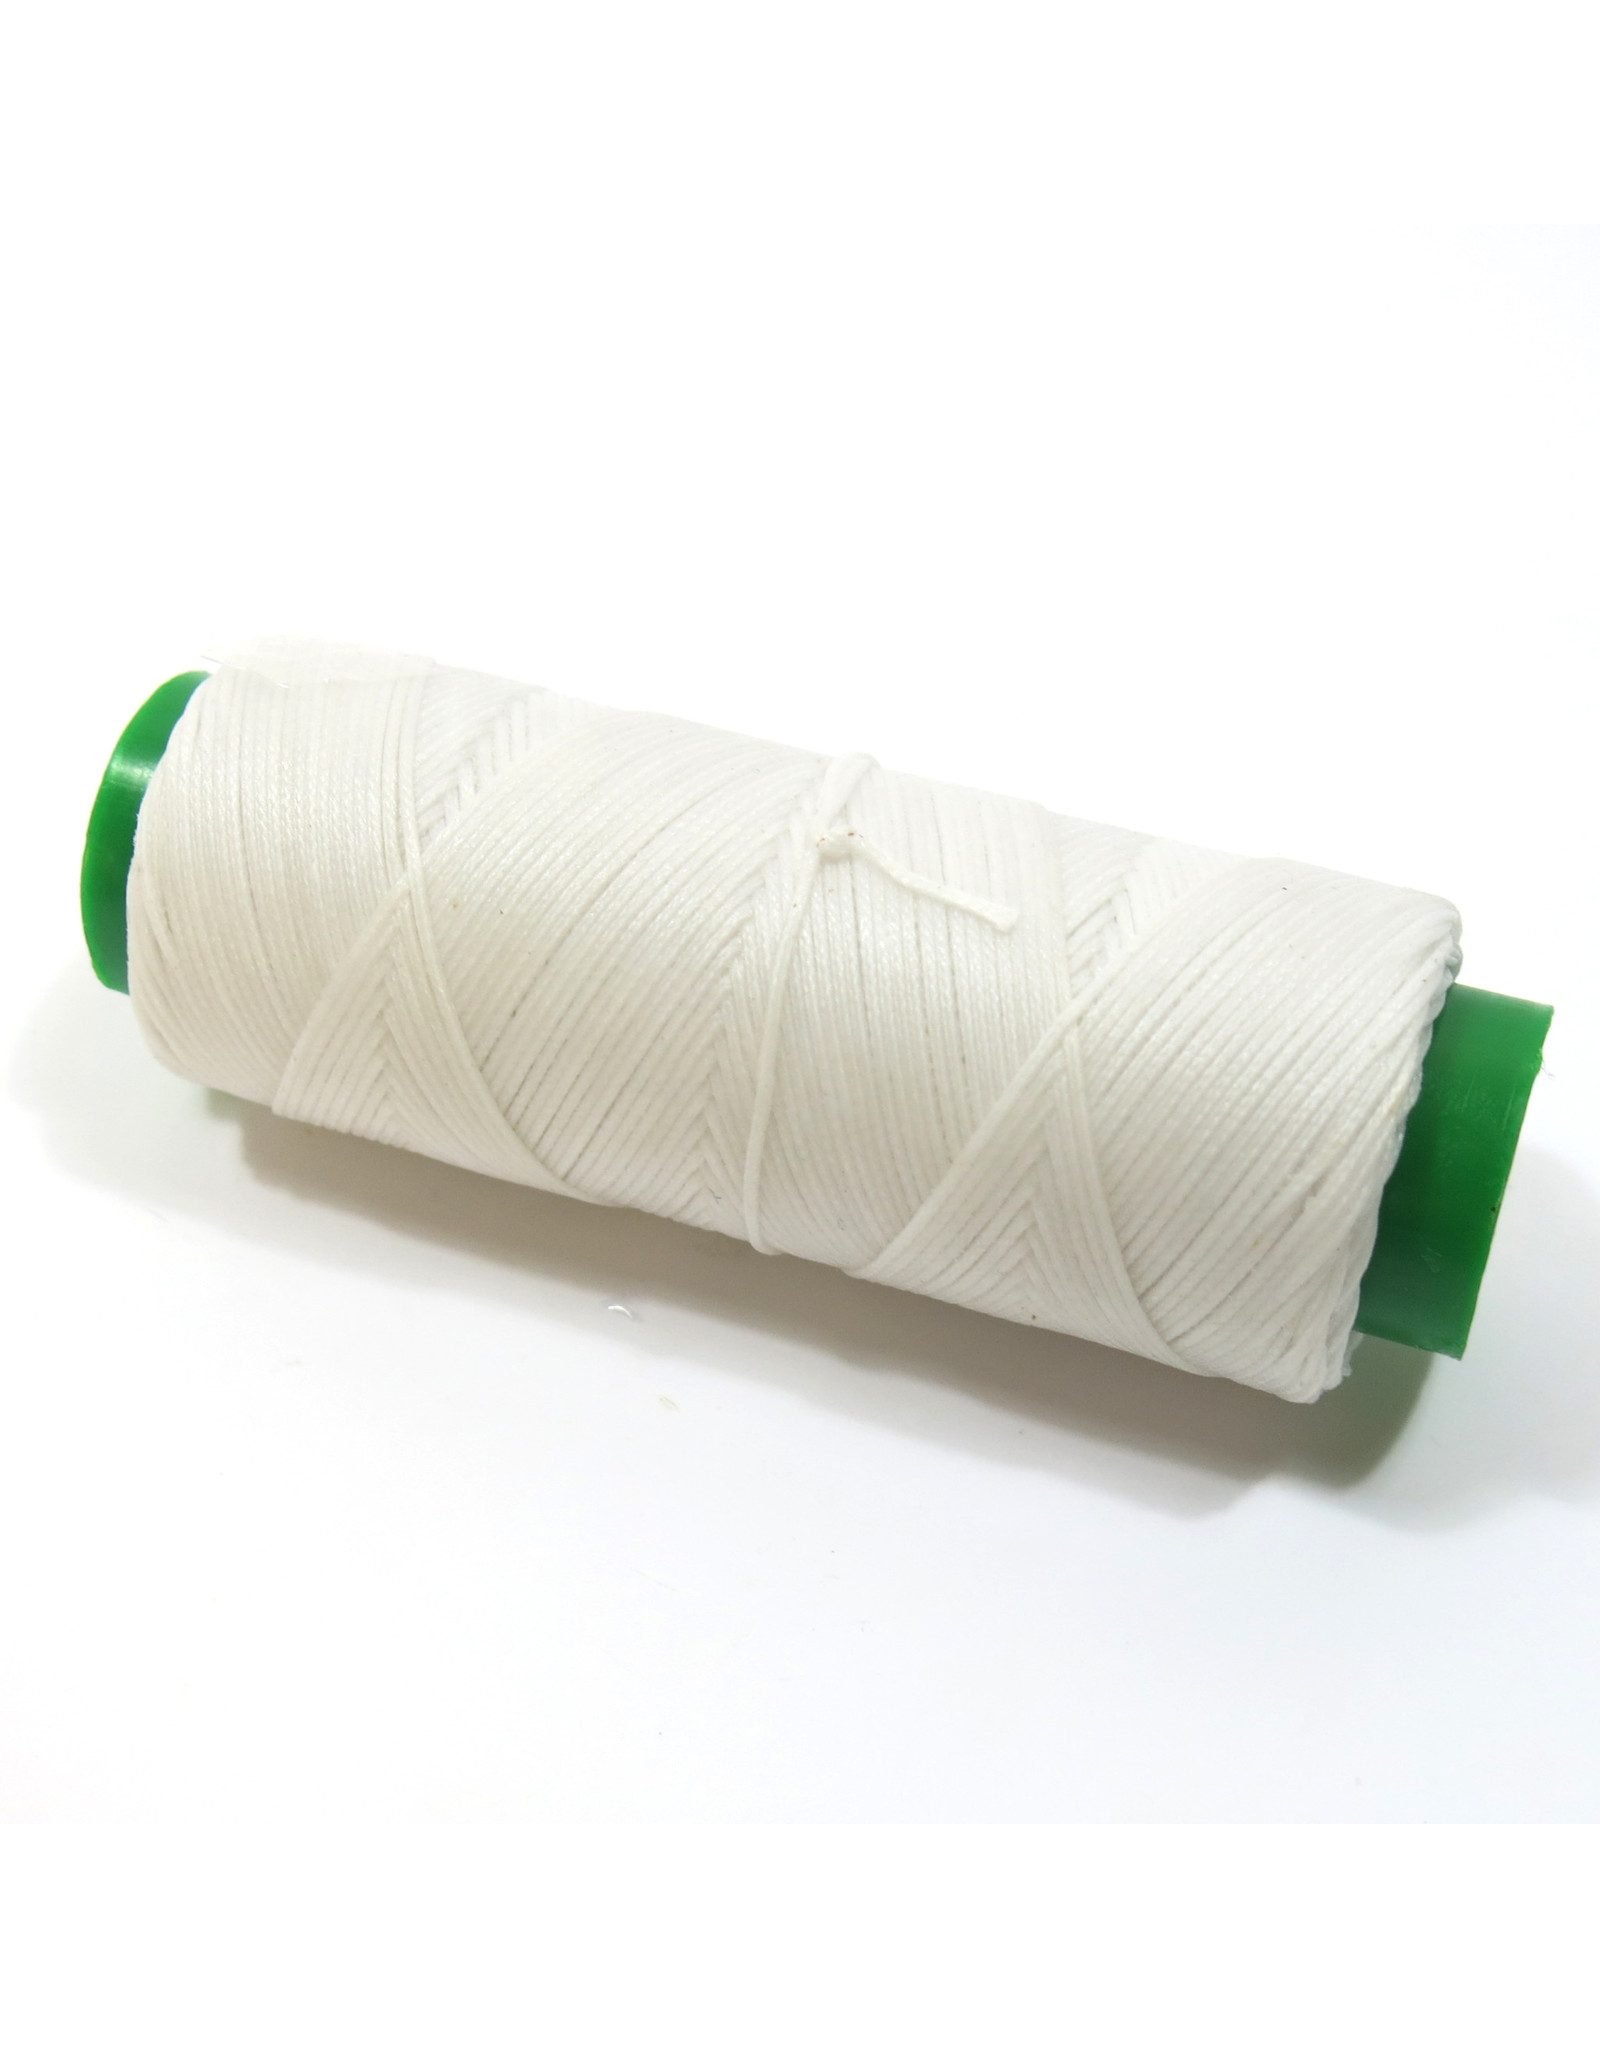 Waxed hand sewing thread white